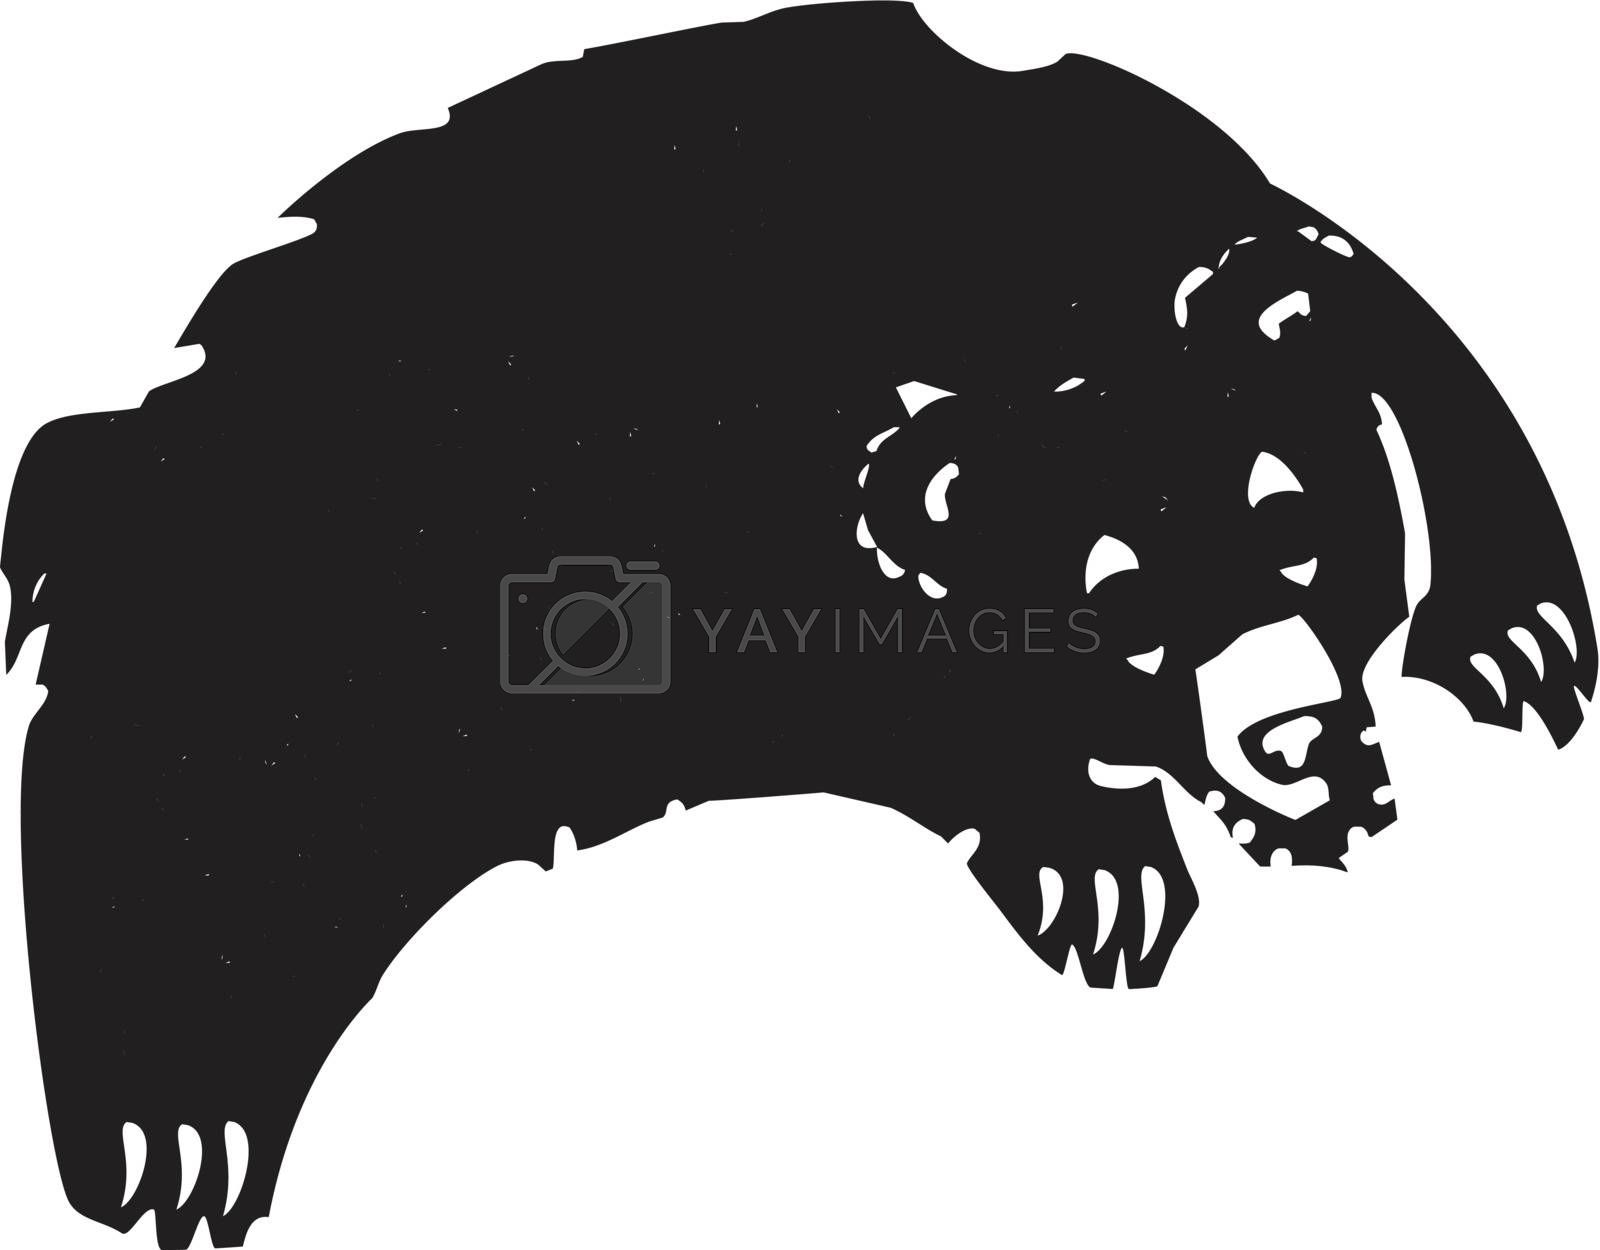 Woodcut style image of a bear leaping